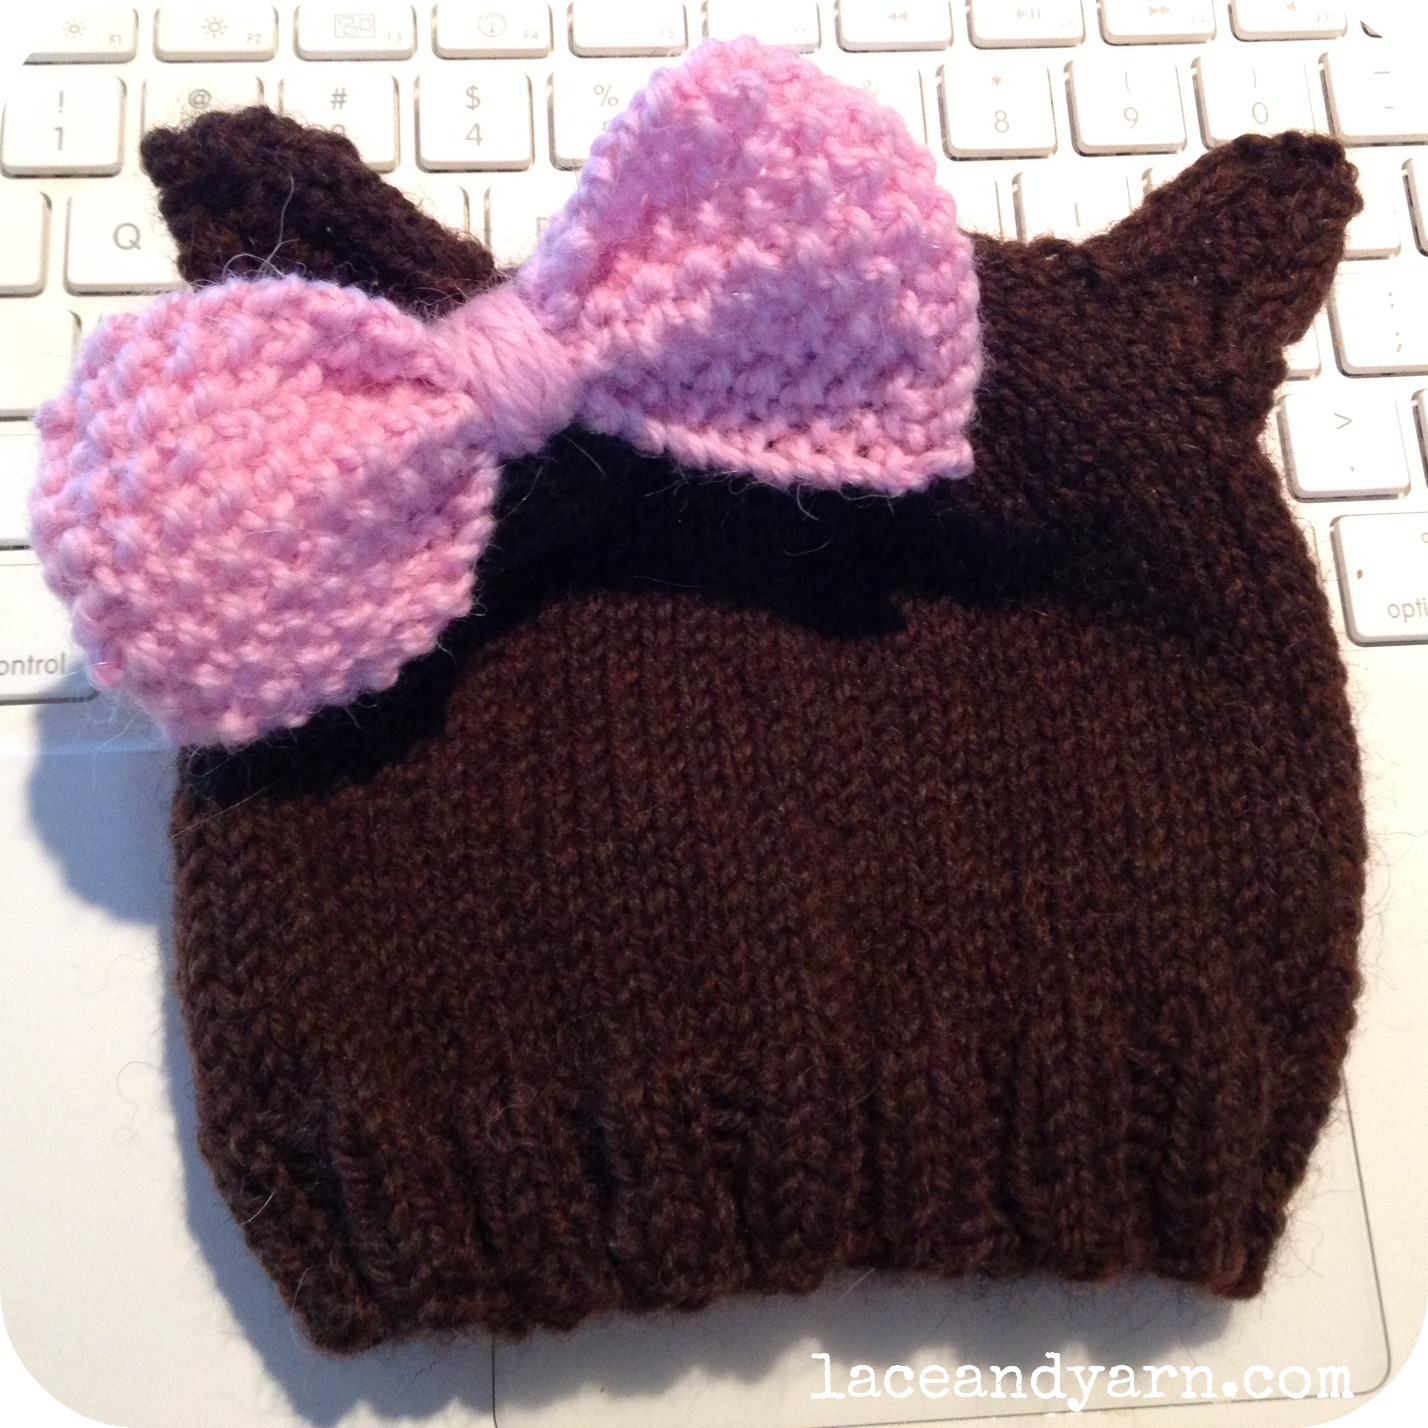 Knitting Pattern For Beanie With Ears : Adding Cat (or just general critter) Ears to a Knit Hat ...